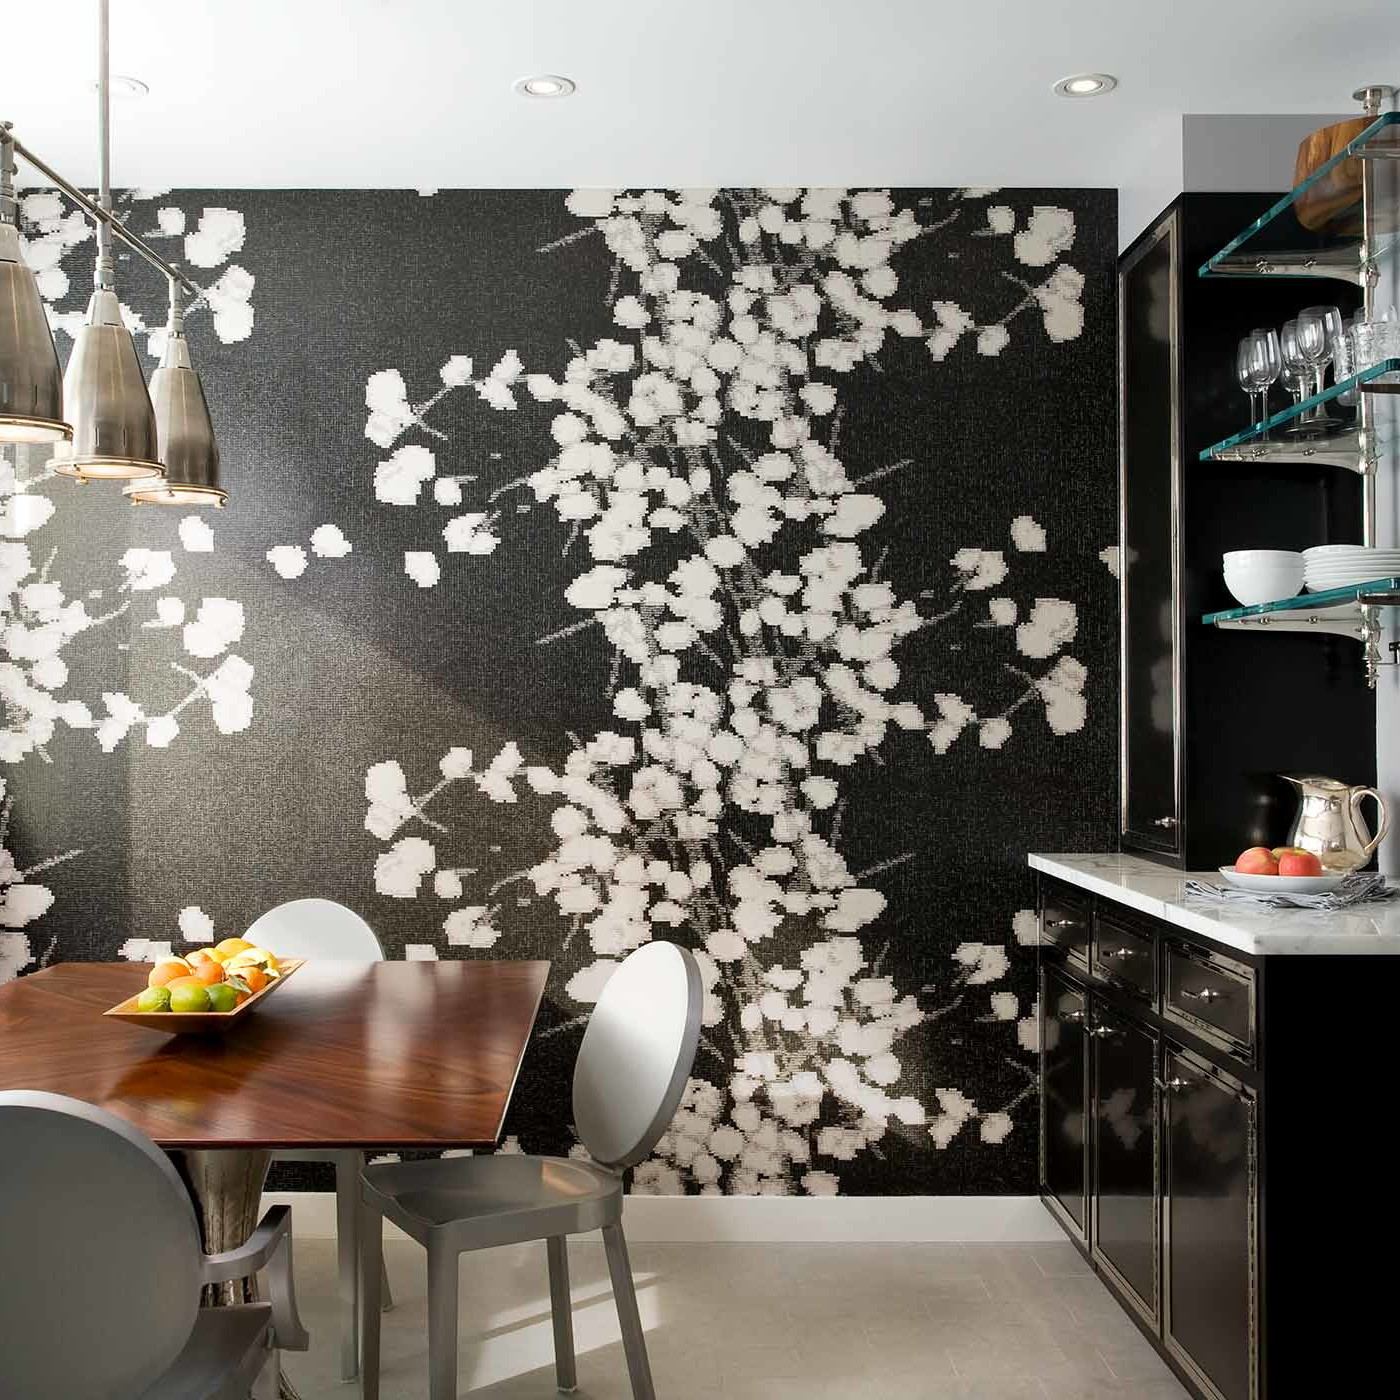 Graphic, bold wallpaper adding drama and impact to the eat-in dining nook in a NYC penthouse apartment